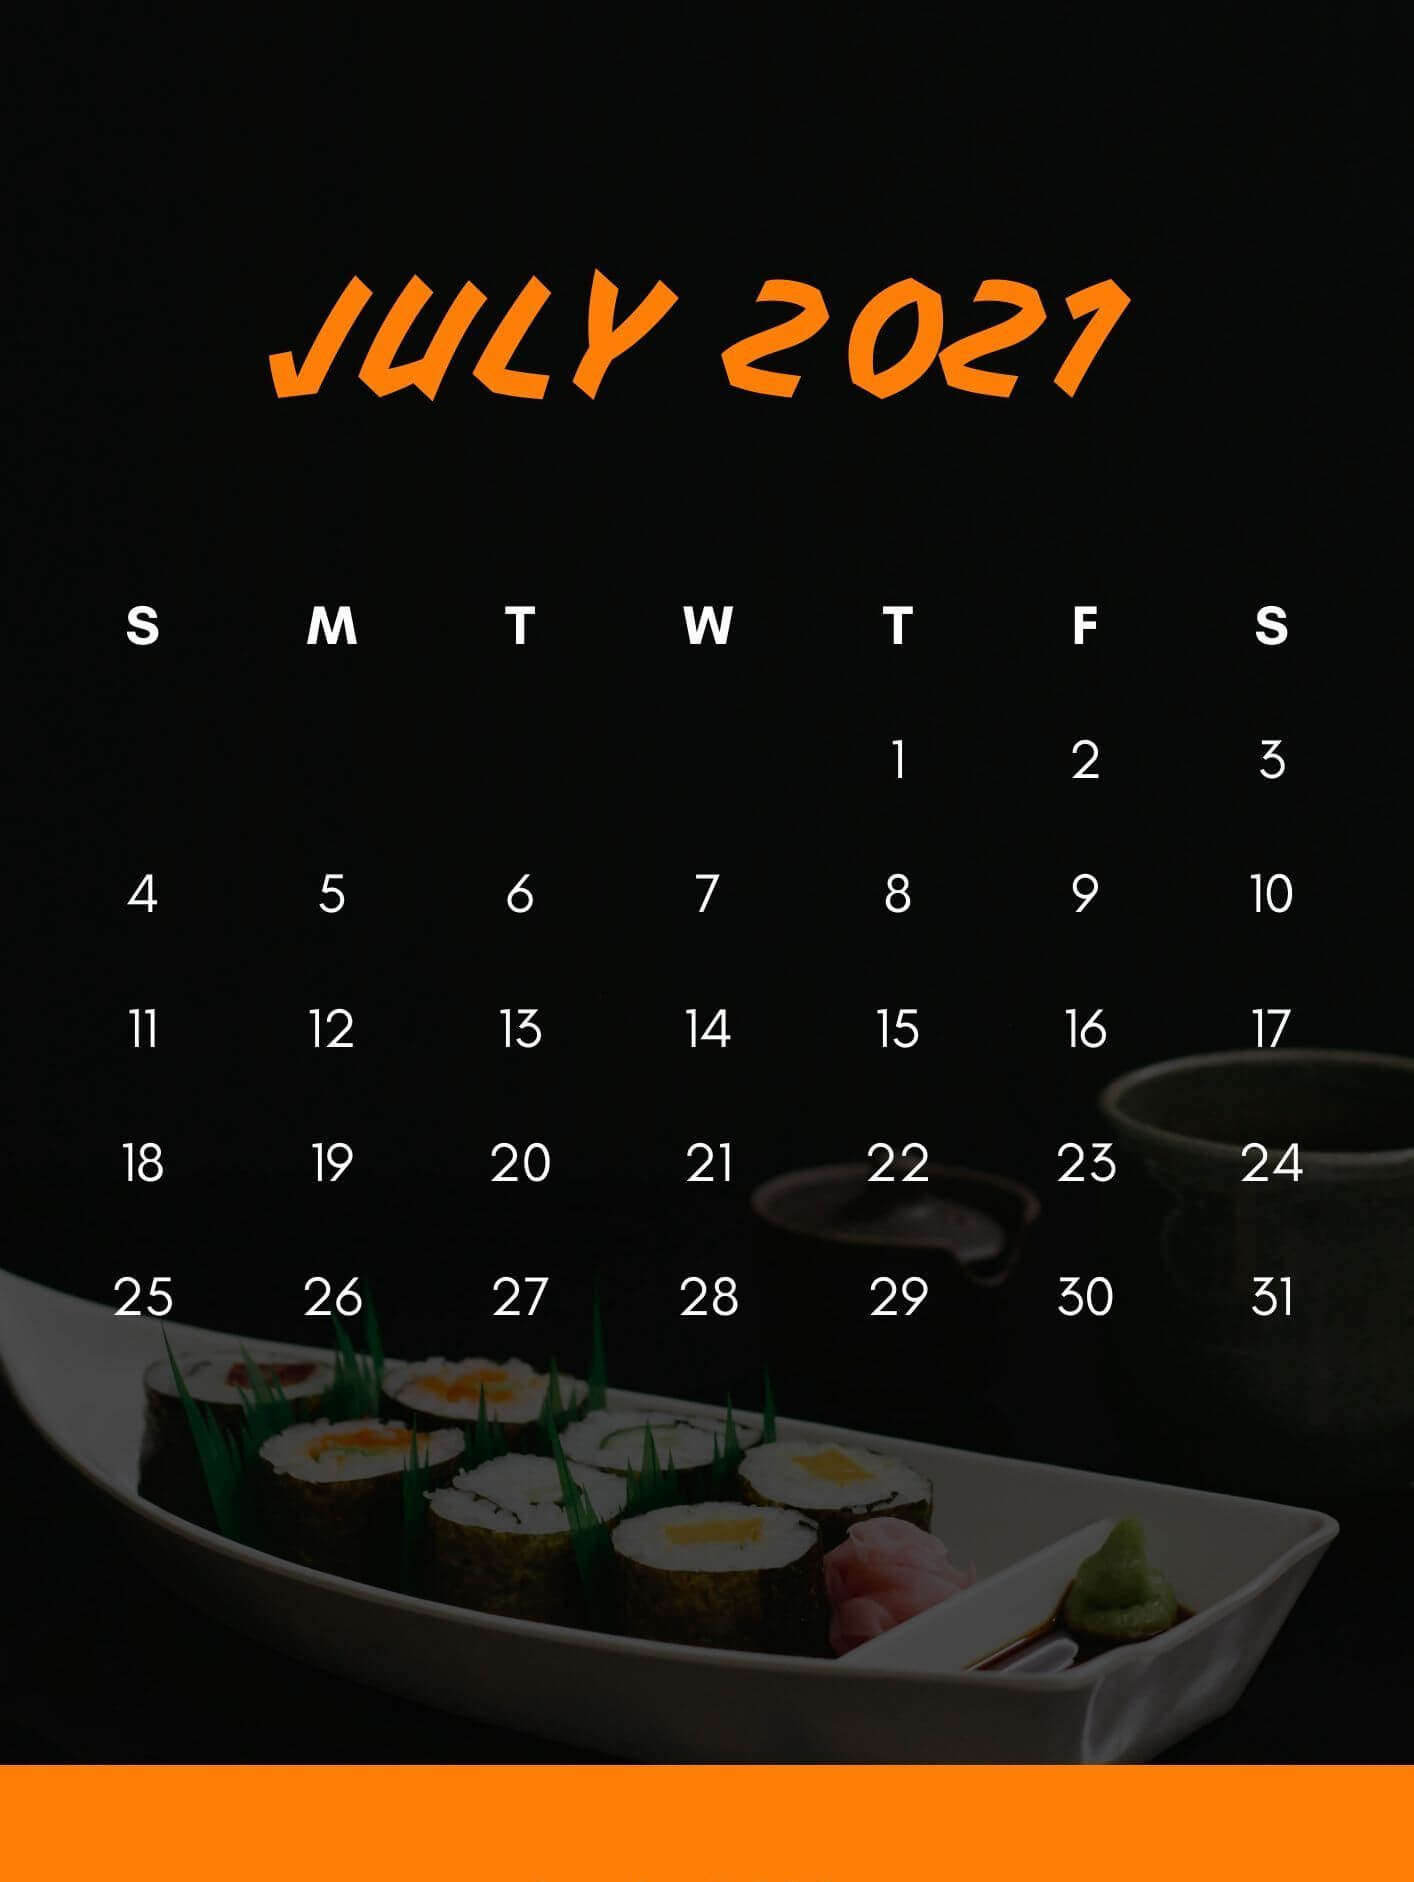 July 2021 iPhone Calendar Wallpaper